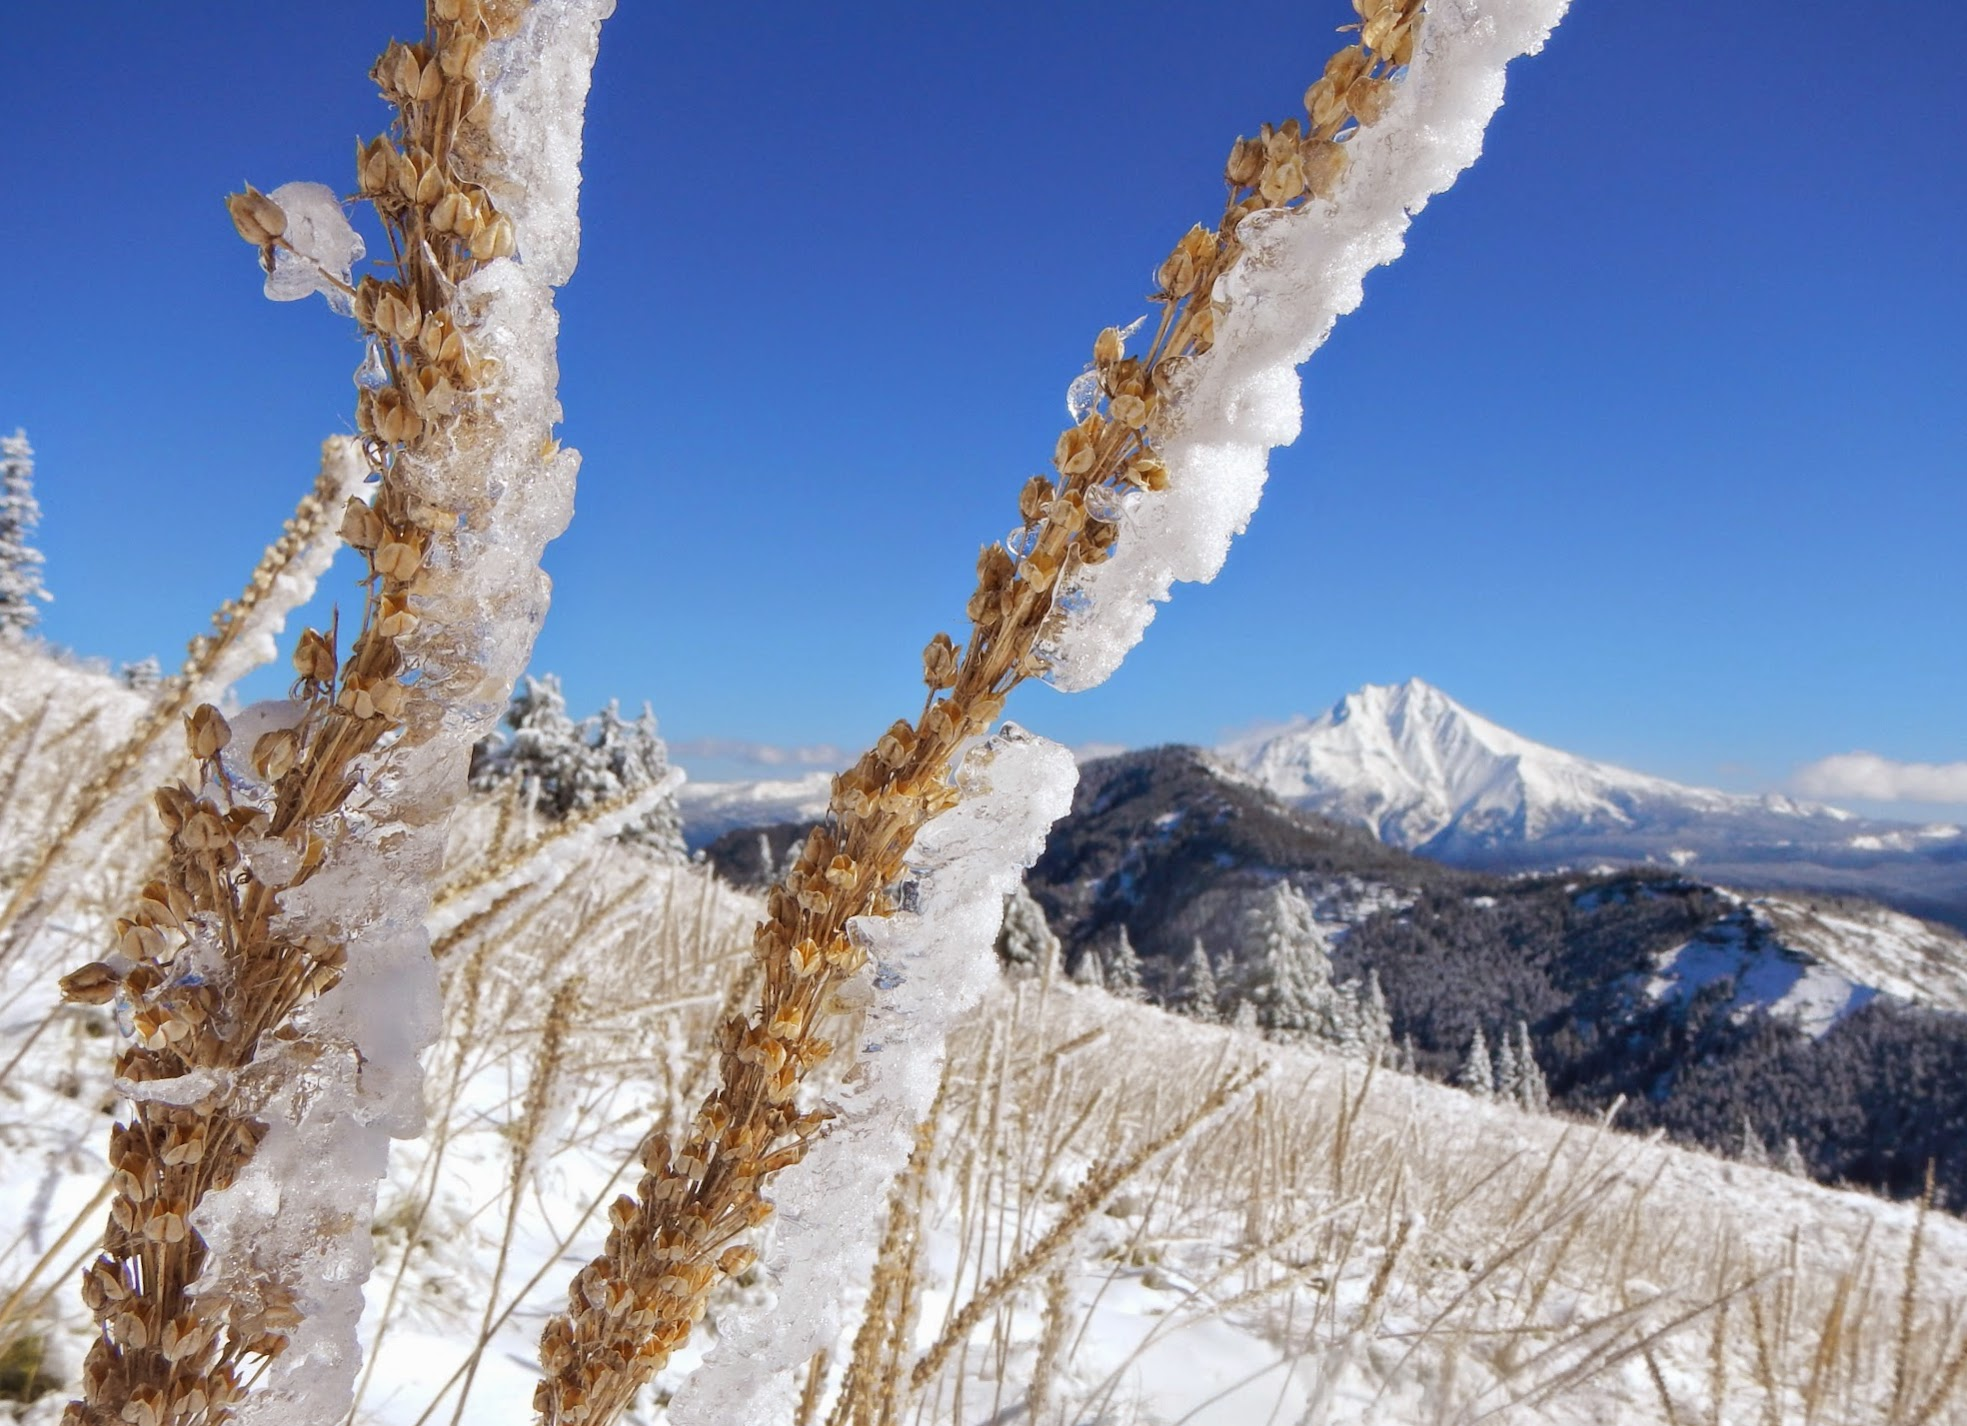 Photo: Ice-coated beargrass